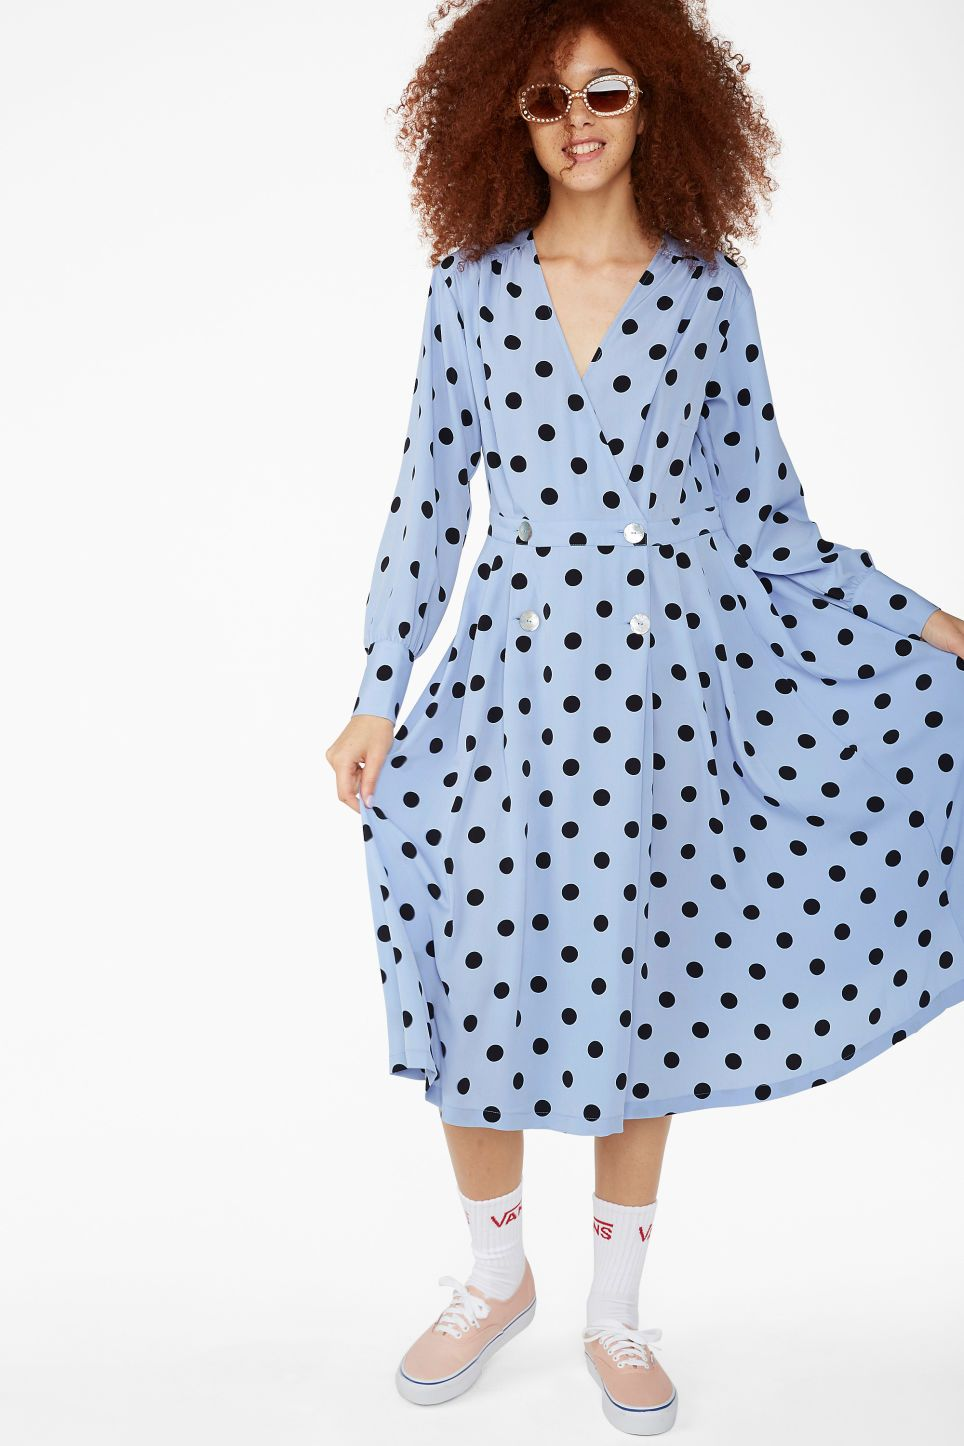 Double Breasted Wrap Dress Blue With Black Dots Dresses